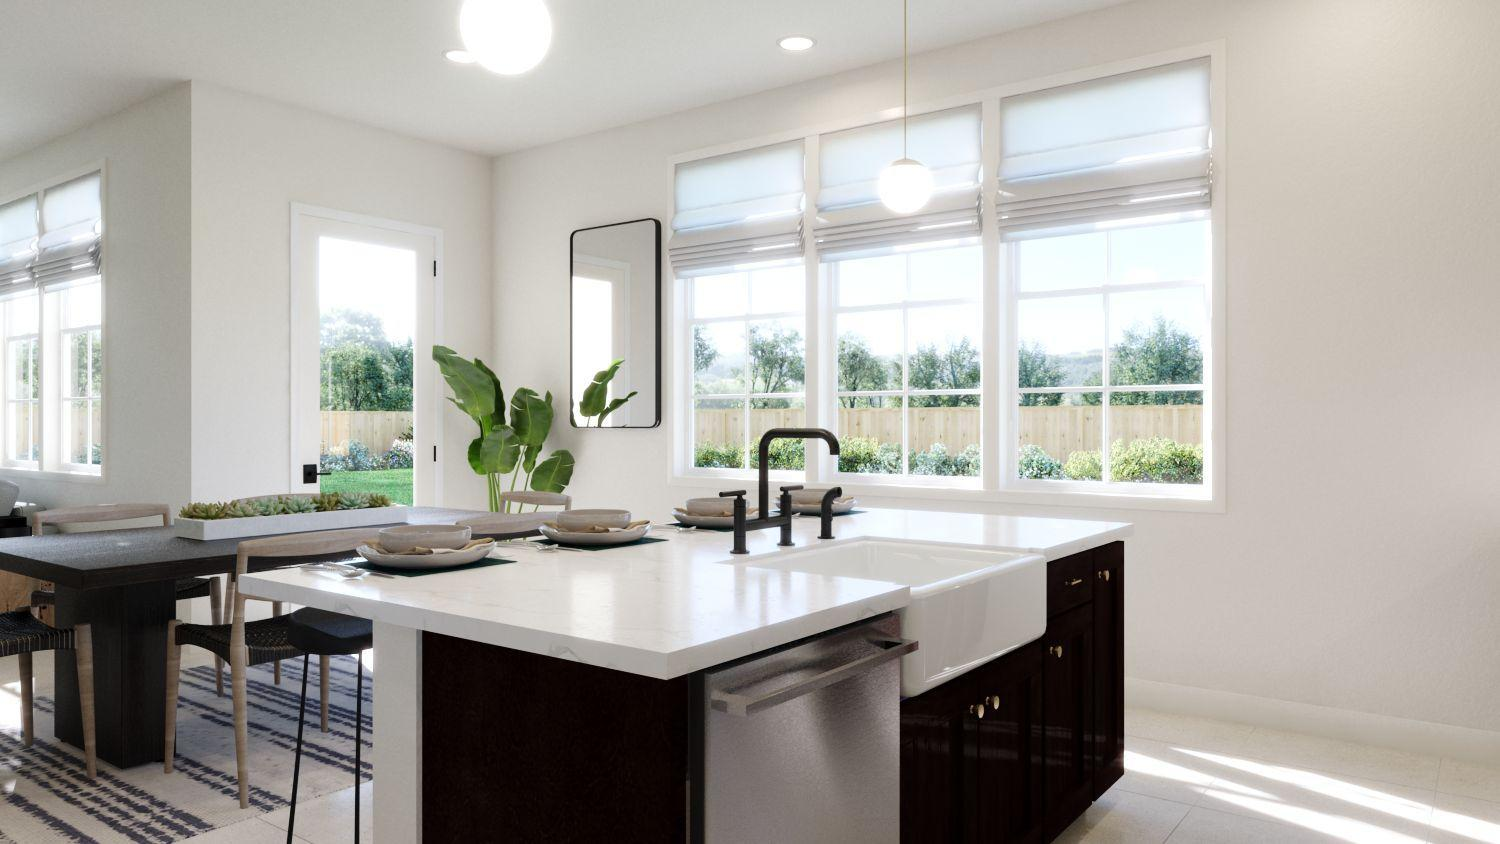 Kitchen featured in the Dover Residence 3 By Trumark Homes in Oakland-Alameda, CA